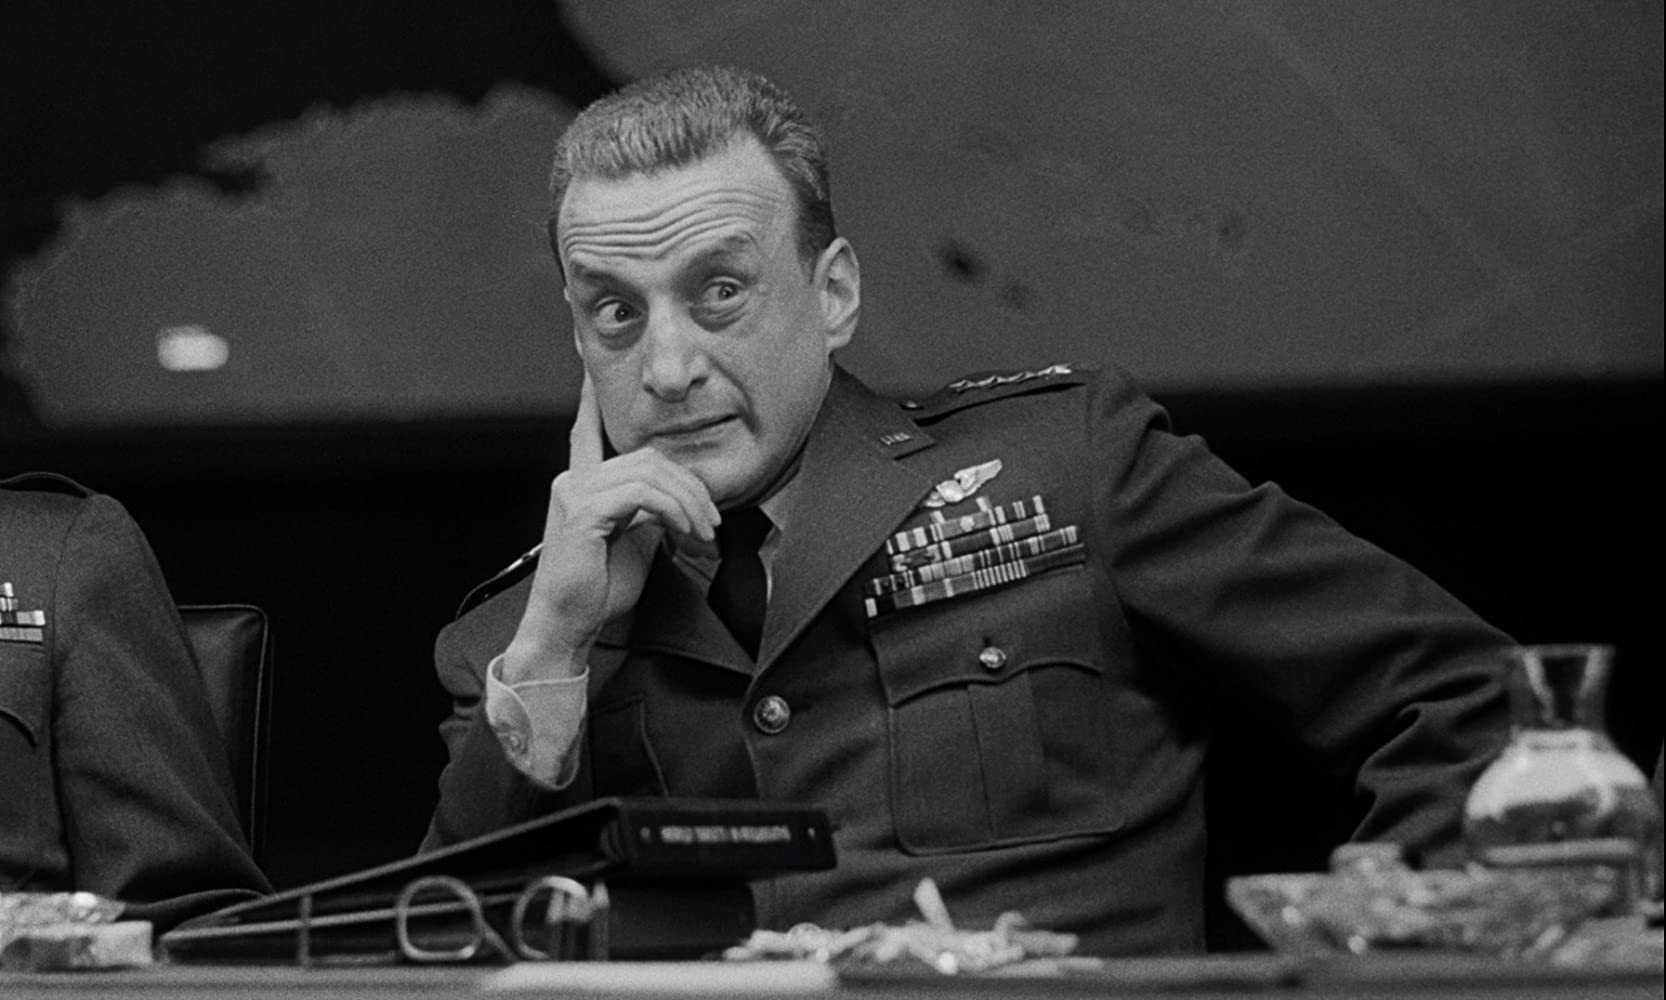 George C. Scott in Dr. Strangelove or: How I Learned to Stop Worrying and Love the Bomb (1964)